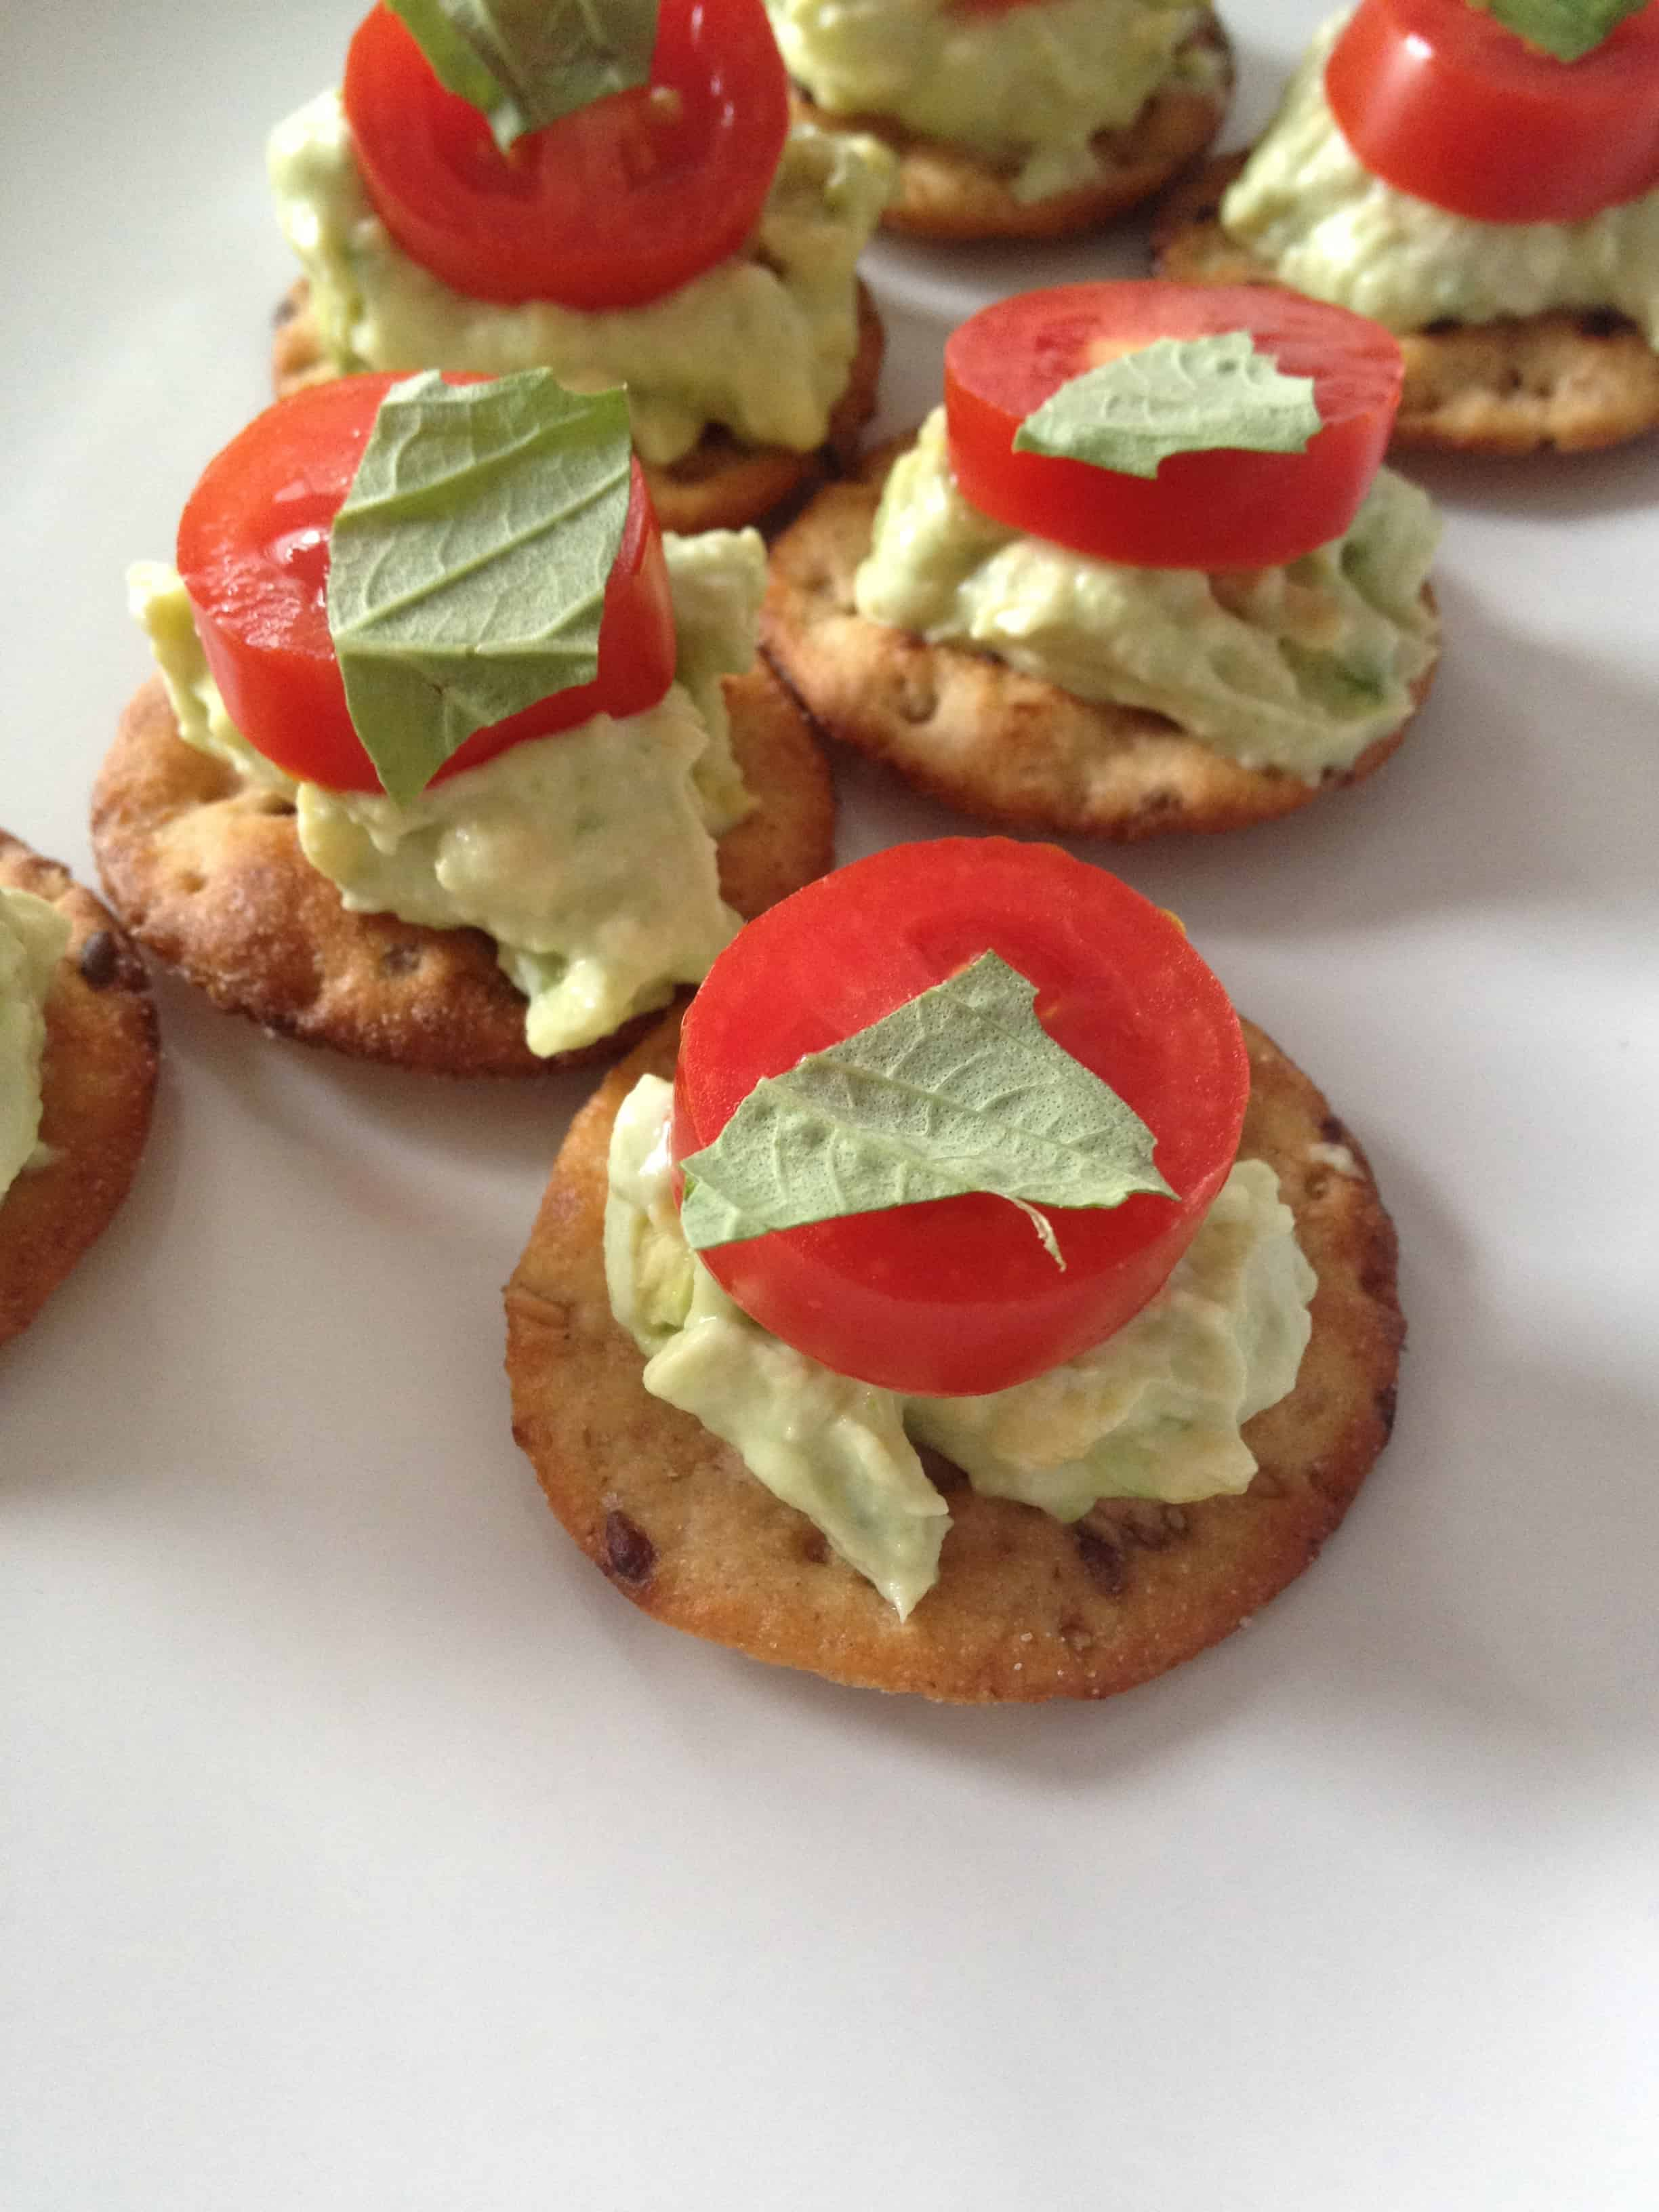 No-Cook Homemade Snacks : Fruit Sticks, Banana Butterflies, and Avocado Toasts